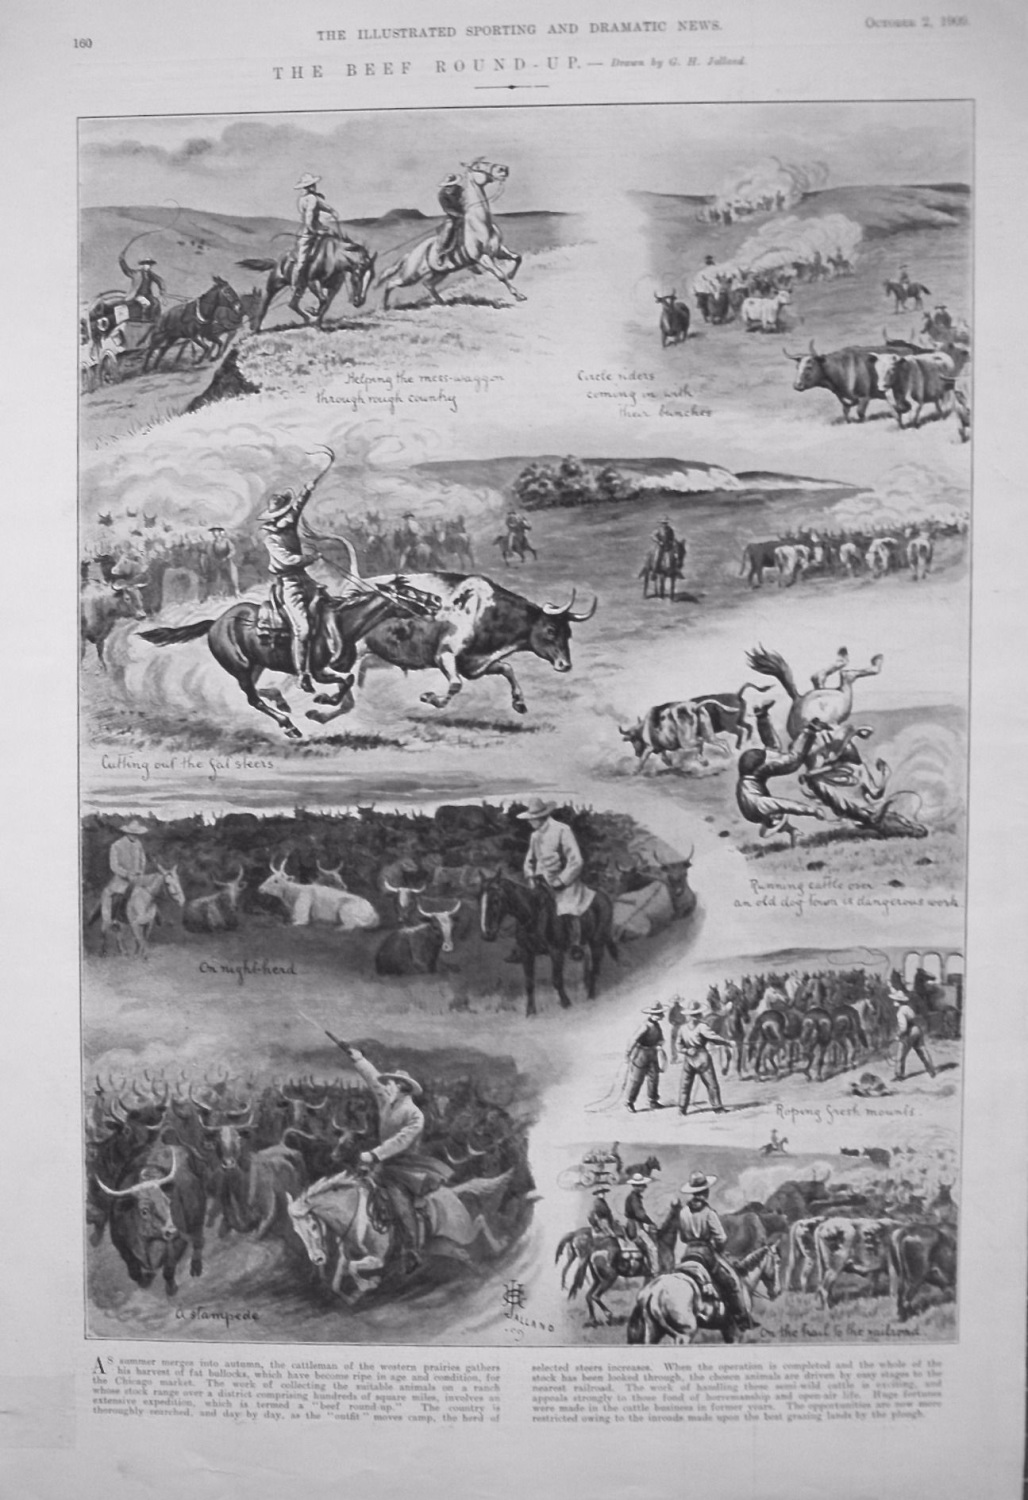 The Beef Round-Up. - Drawn by J.H. Jalland. 1909